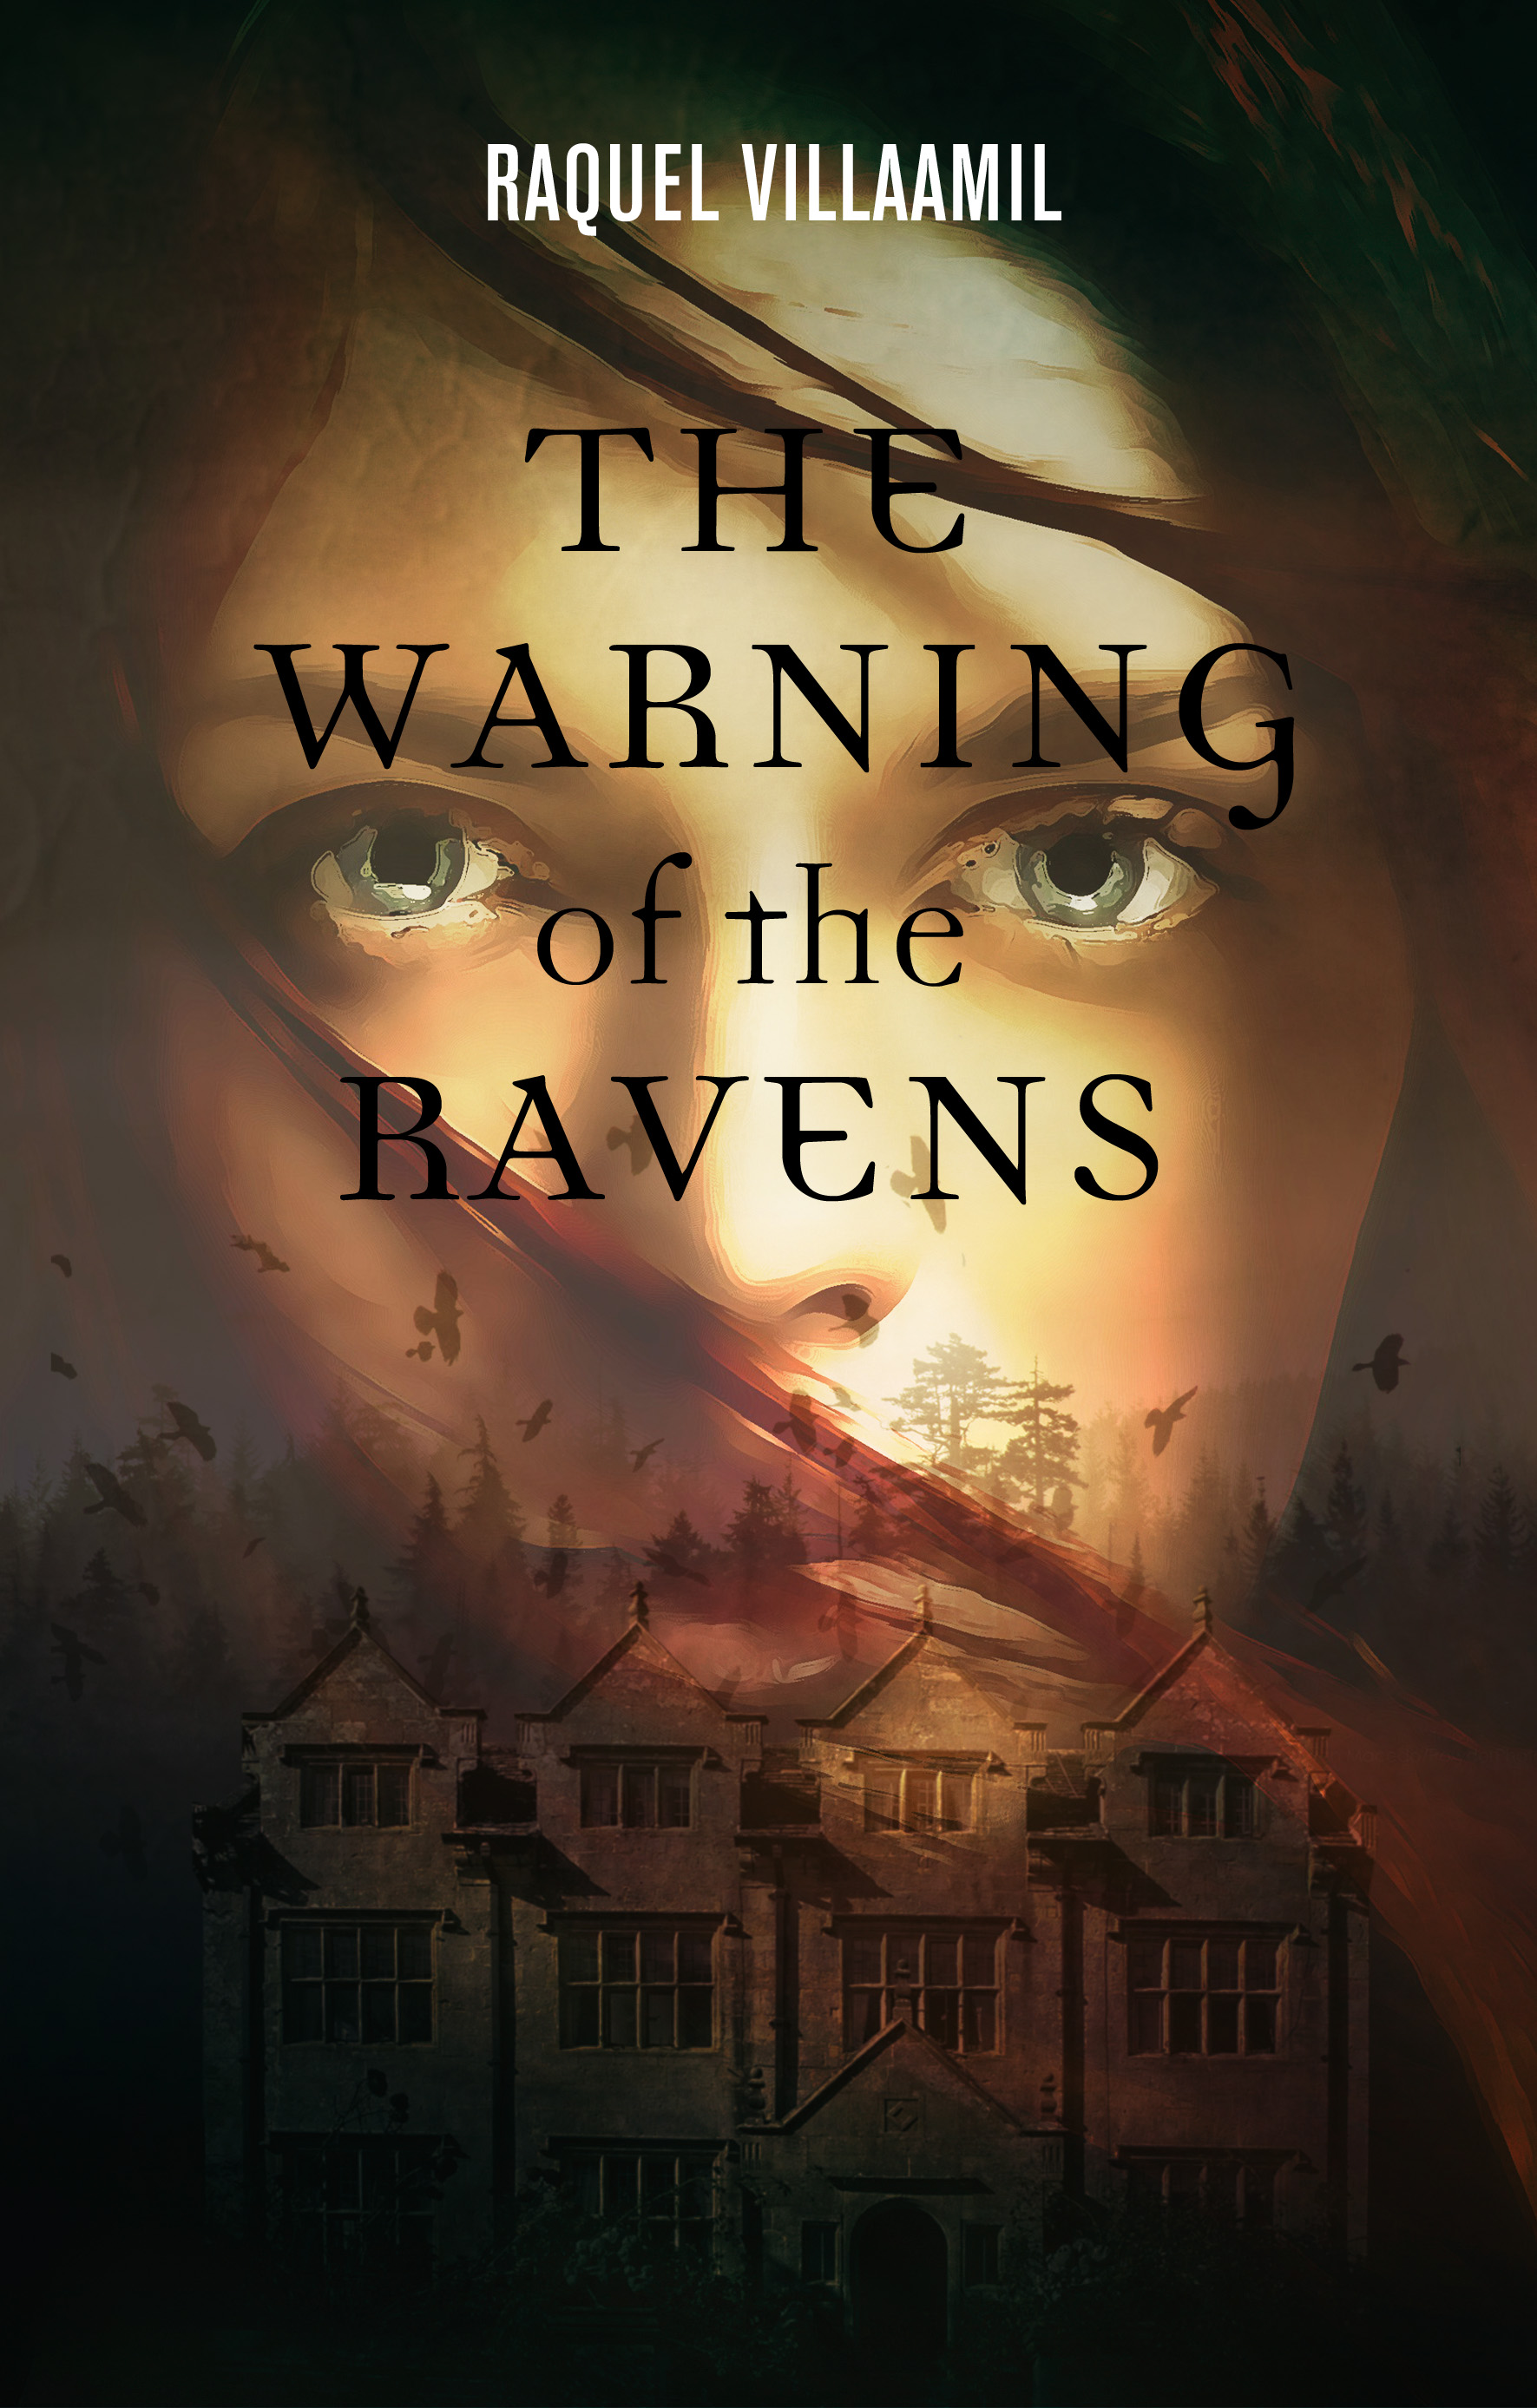 The warning of the ravens